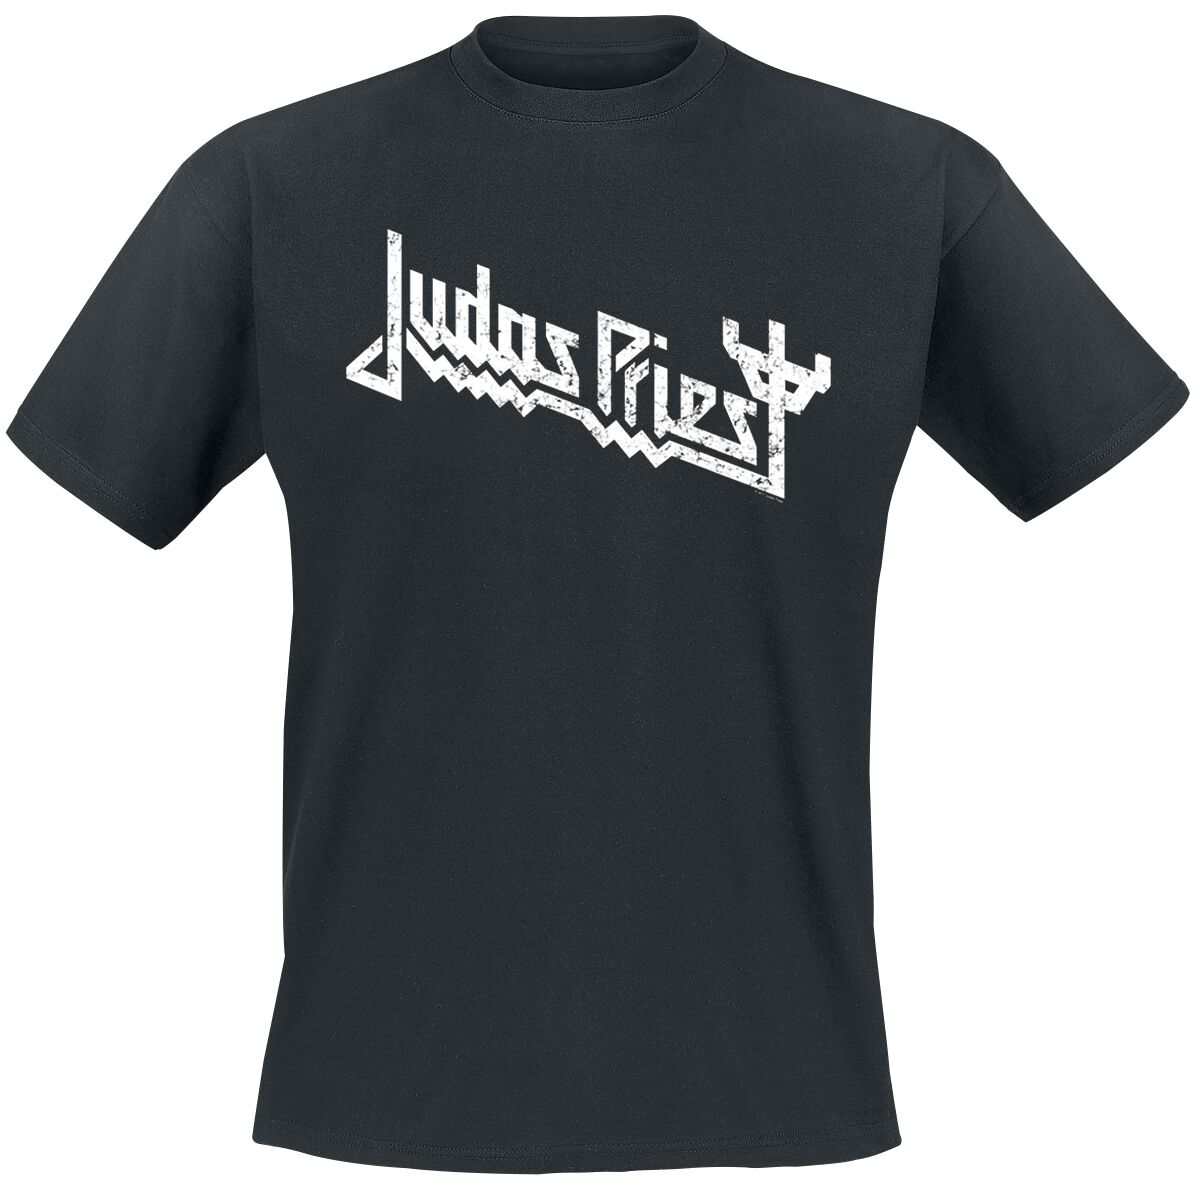 Image of   Judas Priest Logo T-Shirt sort